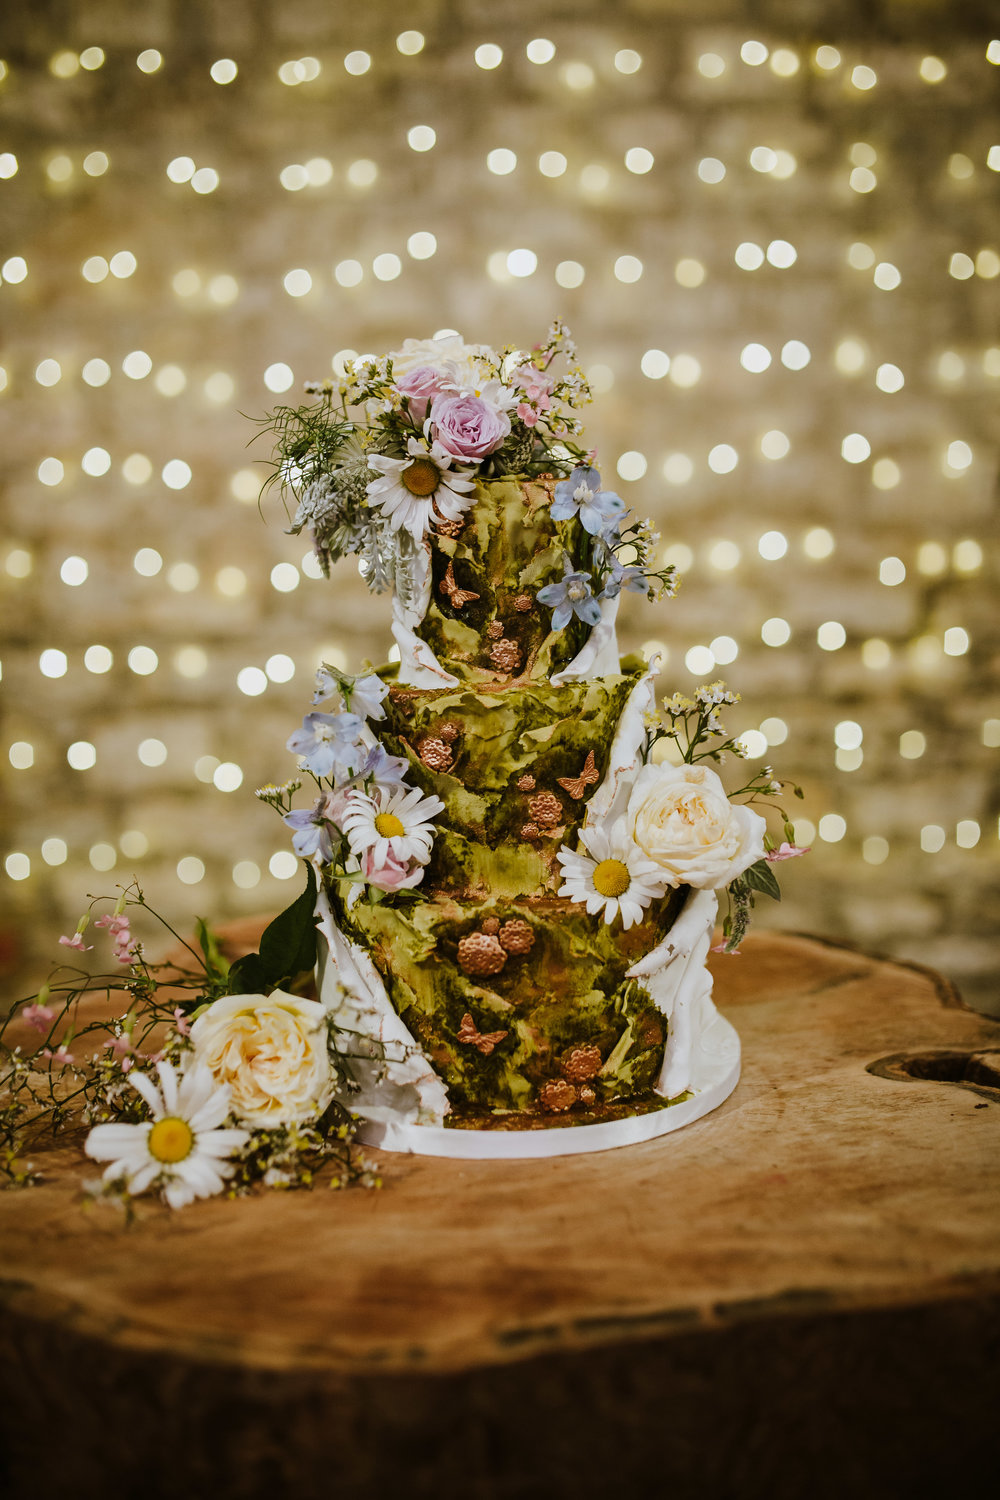 IMG_Secret_Garden_boho_wedding_cake.JPG